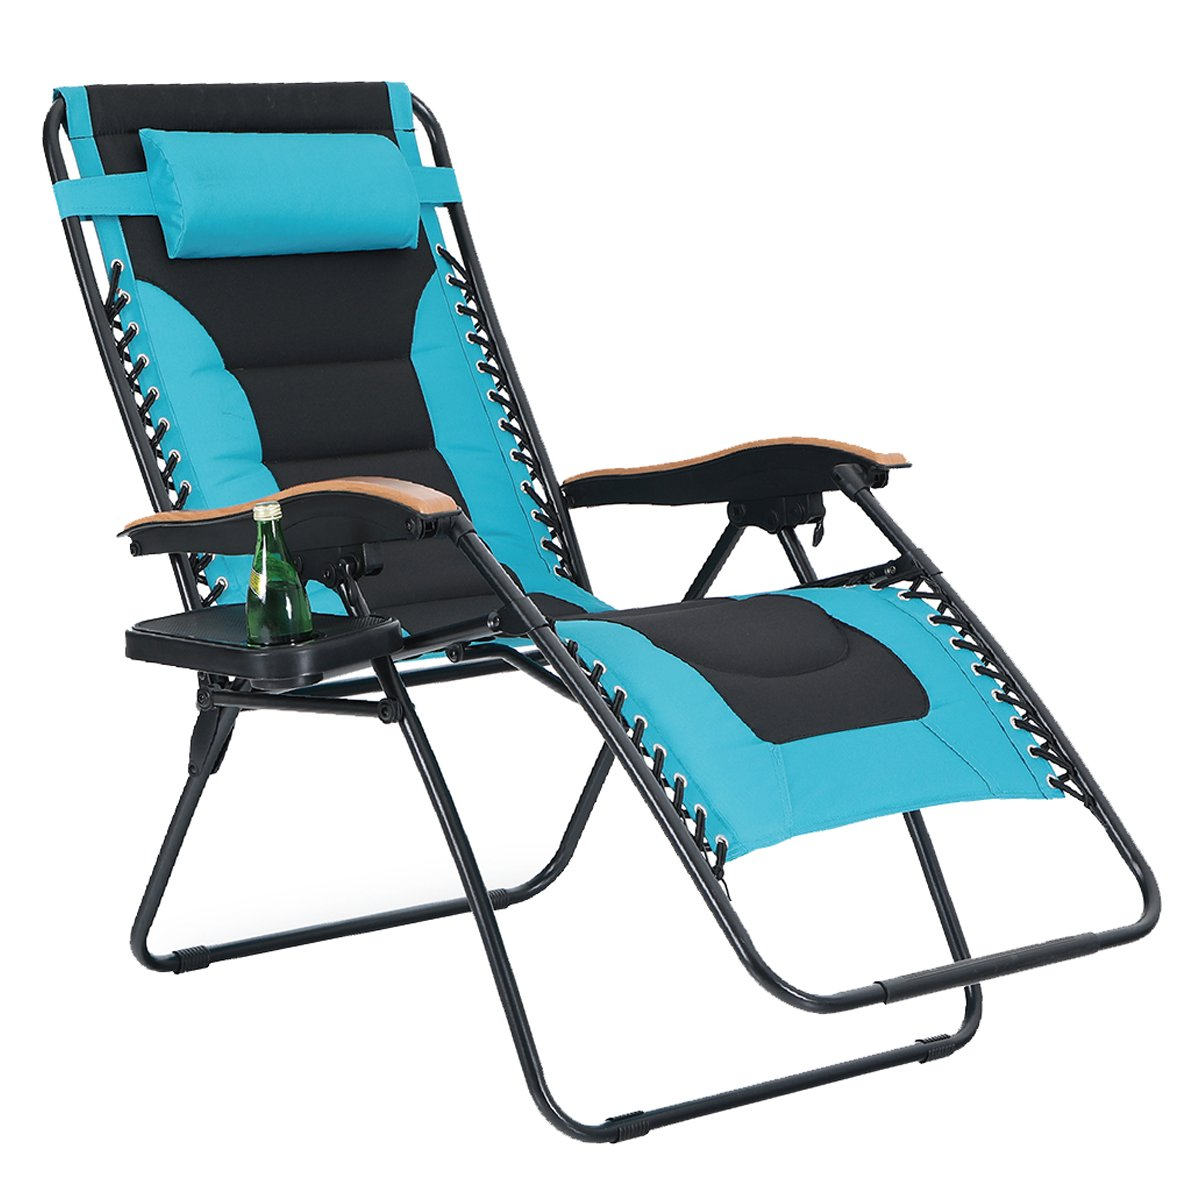 Top 5 Best Xl Amp Oversized Zero Gravity Chair Buying Guide